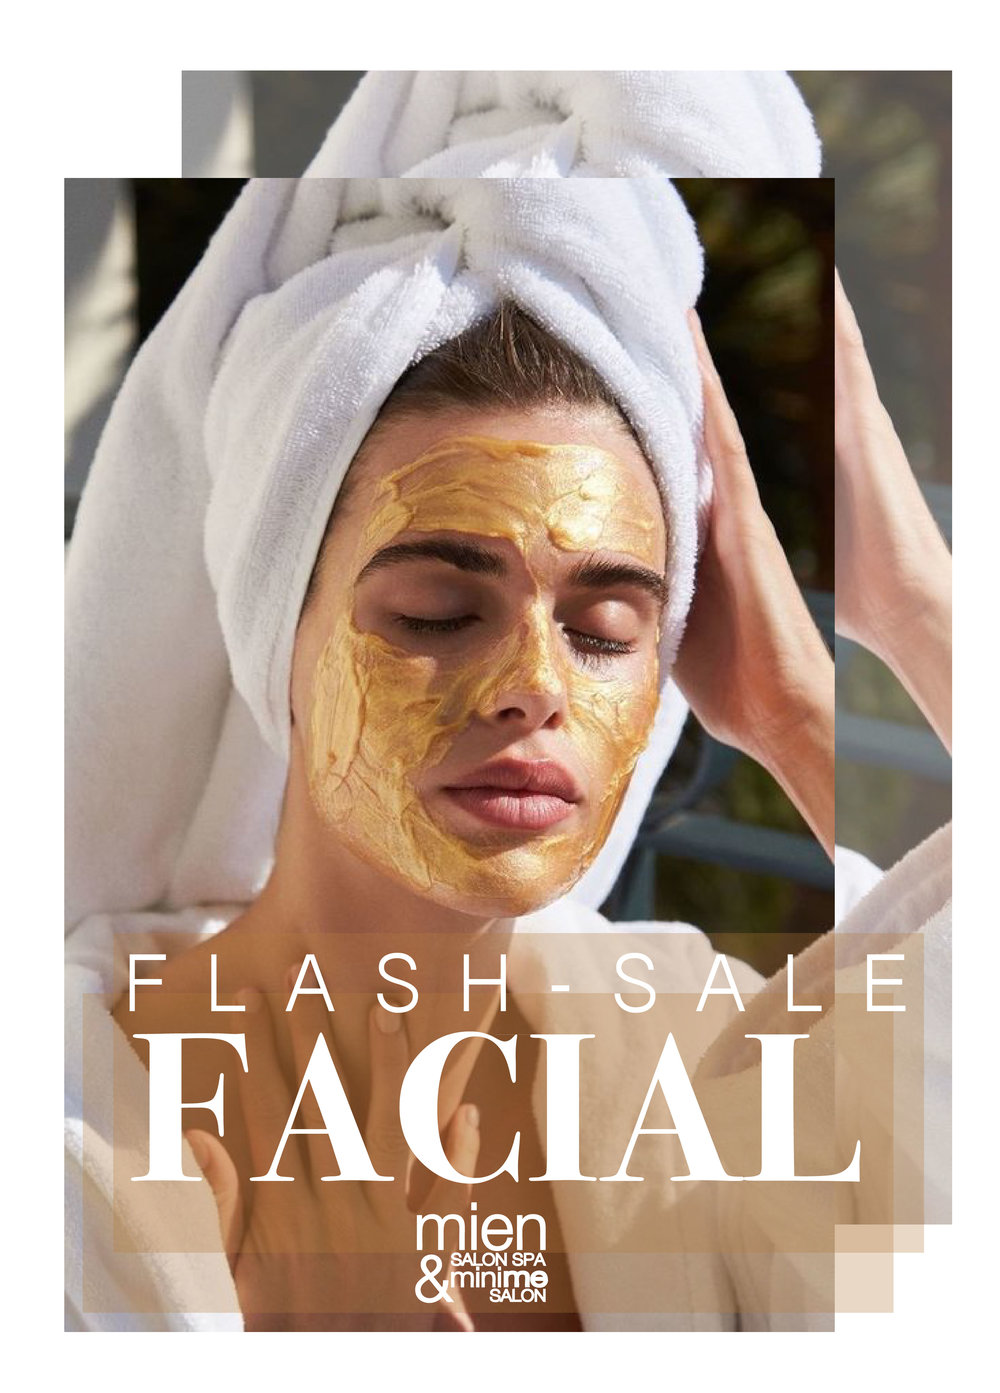 - Celebrate that woman in your life this Mother's Day, with an amazing Dual Exfoliation Peel Course!4 Facials for the price of 3.See her skin transform to brighter, firmer, younger looking skin with our professional Vitamin C complex along with the beautiful Aveda products used in our facials.♡Mother's Day Flash Facial Sale!Buy 3 facials and get 1 free!$495, save $165!♡ Facials to be redeemed by the end of July 2018 for best results (3 month expiry from date of purchase)*T&C's apply